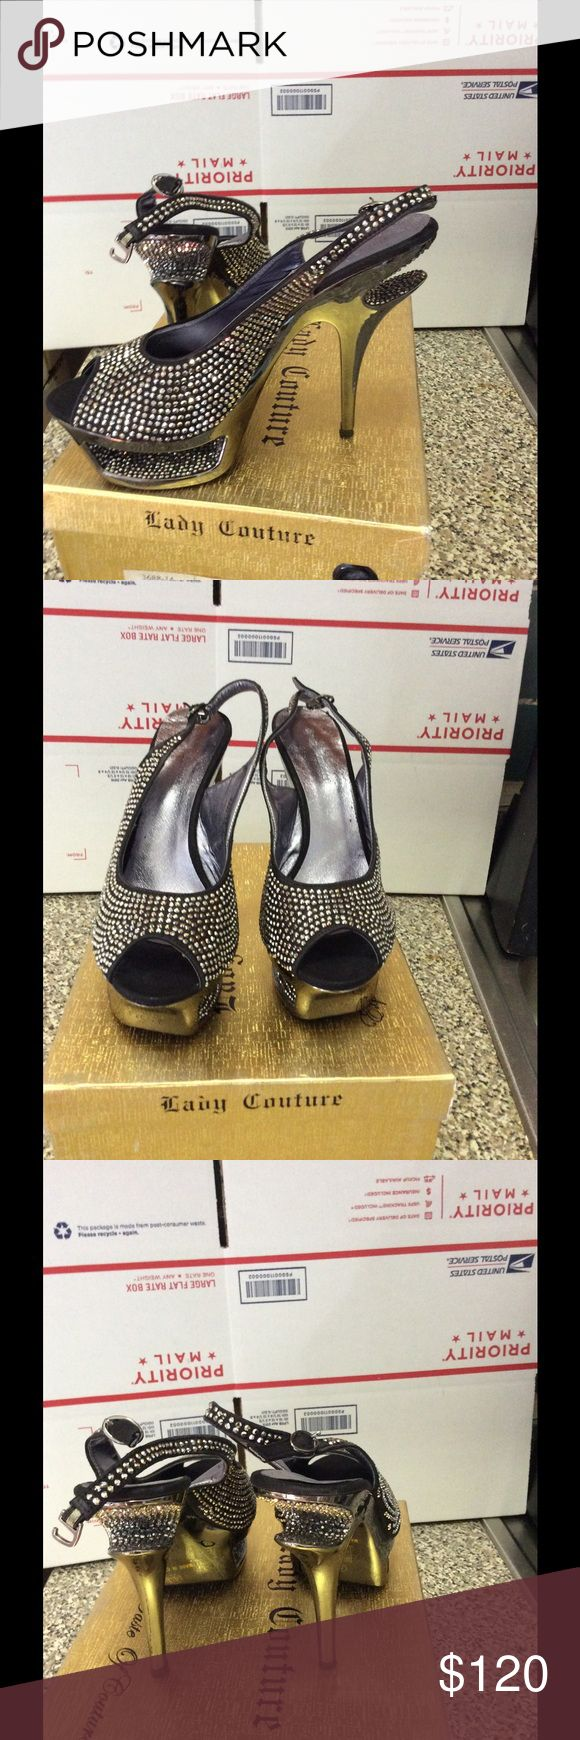 Used Lady couture heels Sling back heels.                                              Sliver crusted black looks gray also . Beautiful heels by lady couture. Lady couture Shoes Heels